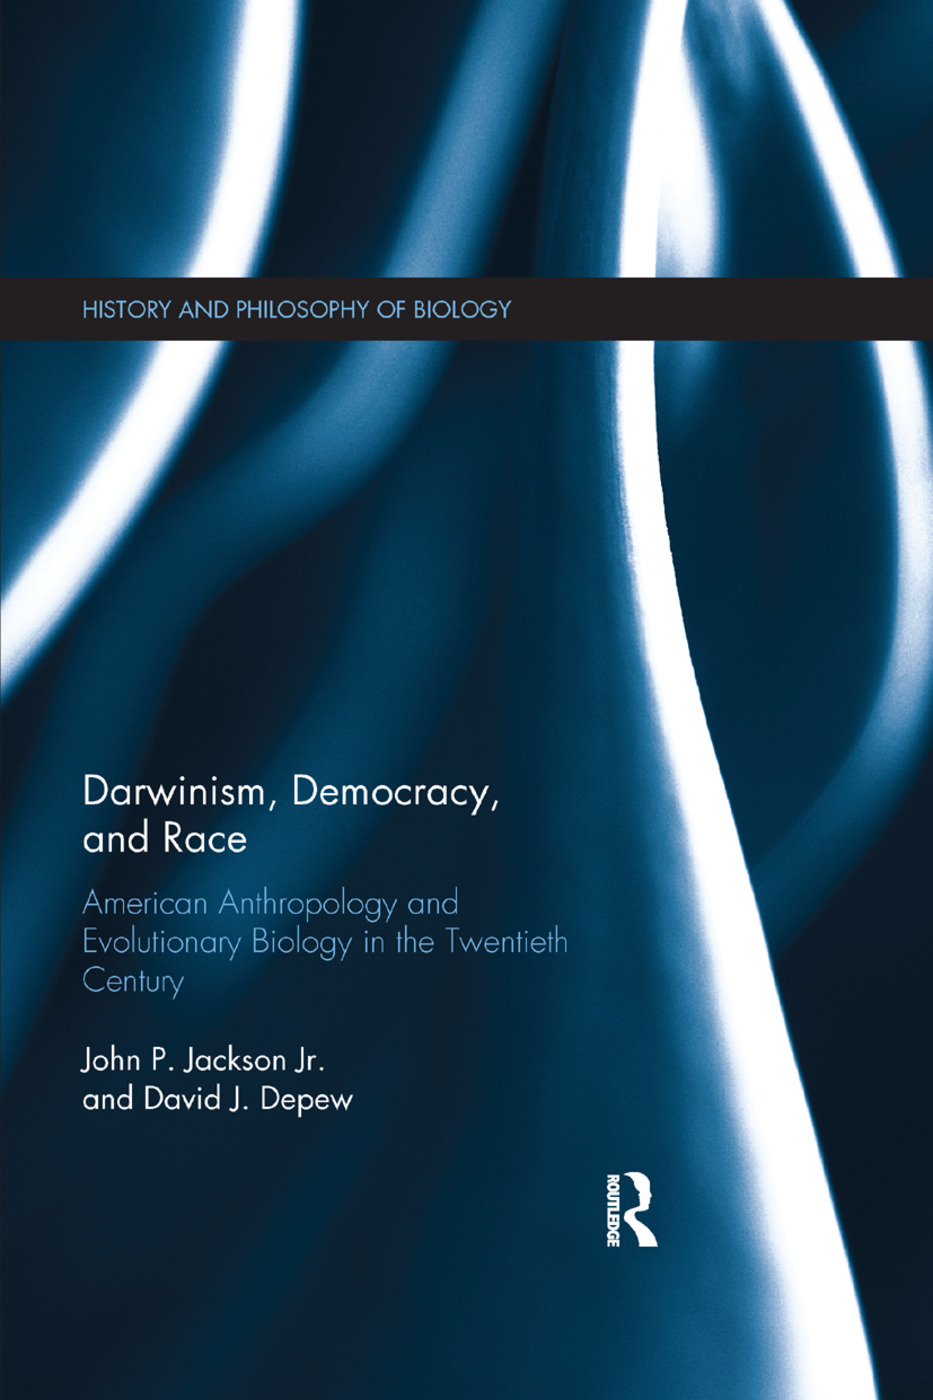 Darwinism, Democracy, and Race: American Anthropology and Evolutionary Biology in the Twentieth Century book cover